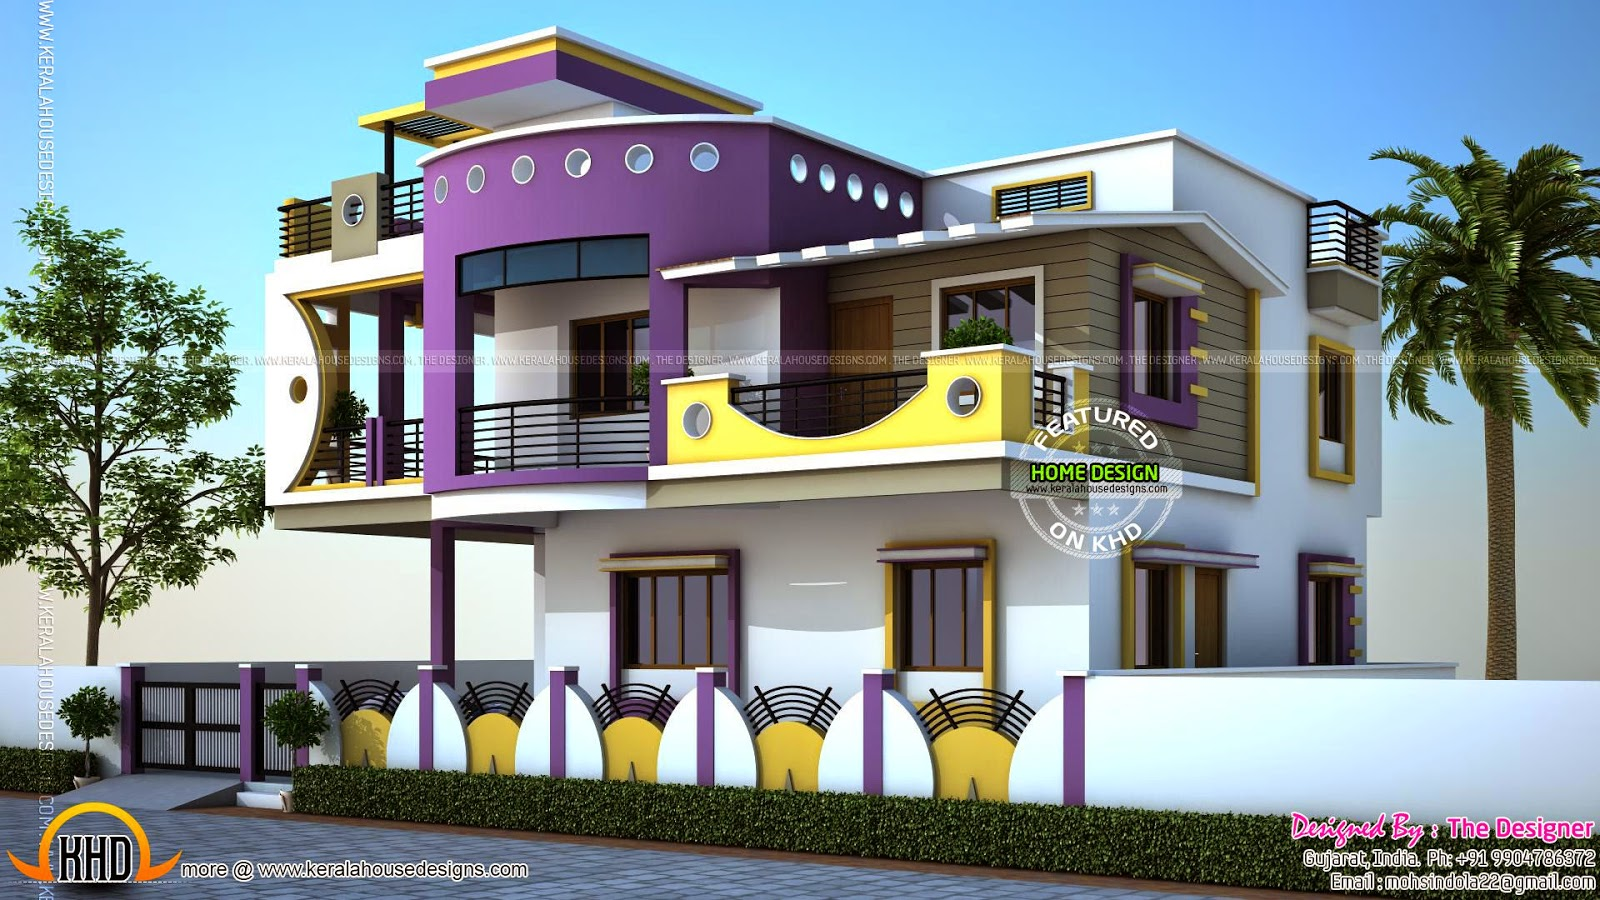 House exterior designs in contemporary style kerala home for One floor house exterior design